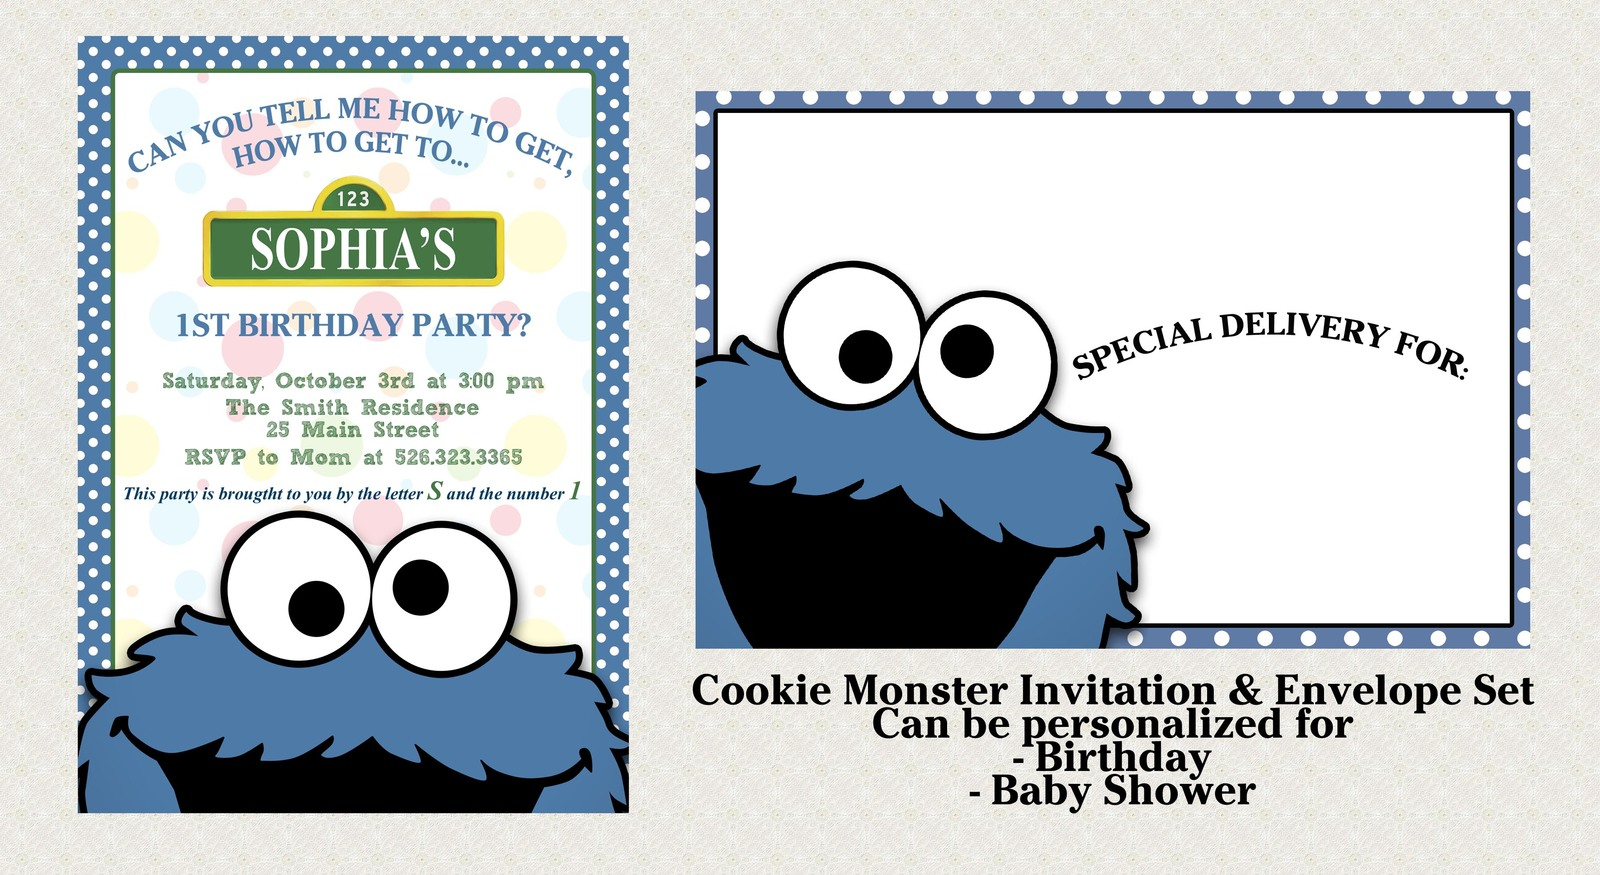 Cookie Monster Invitation Set matching and similar items